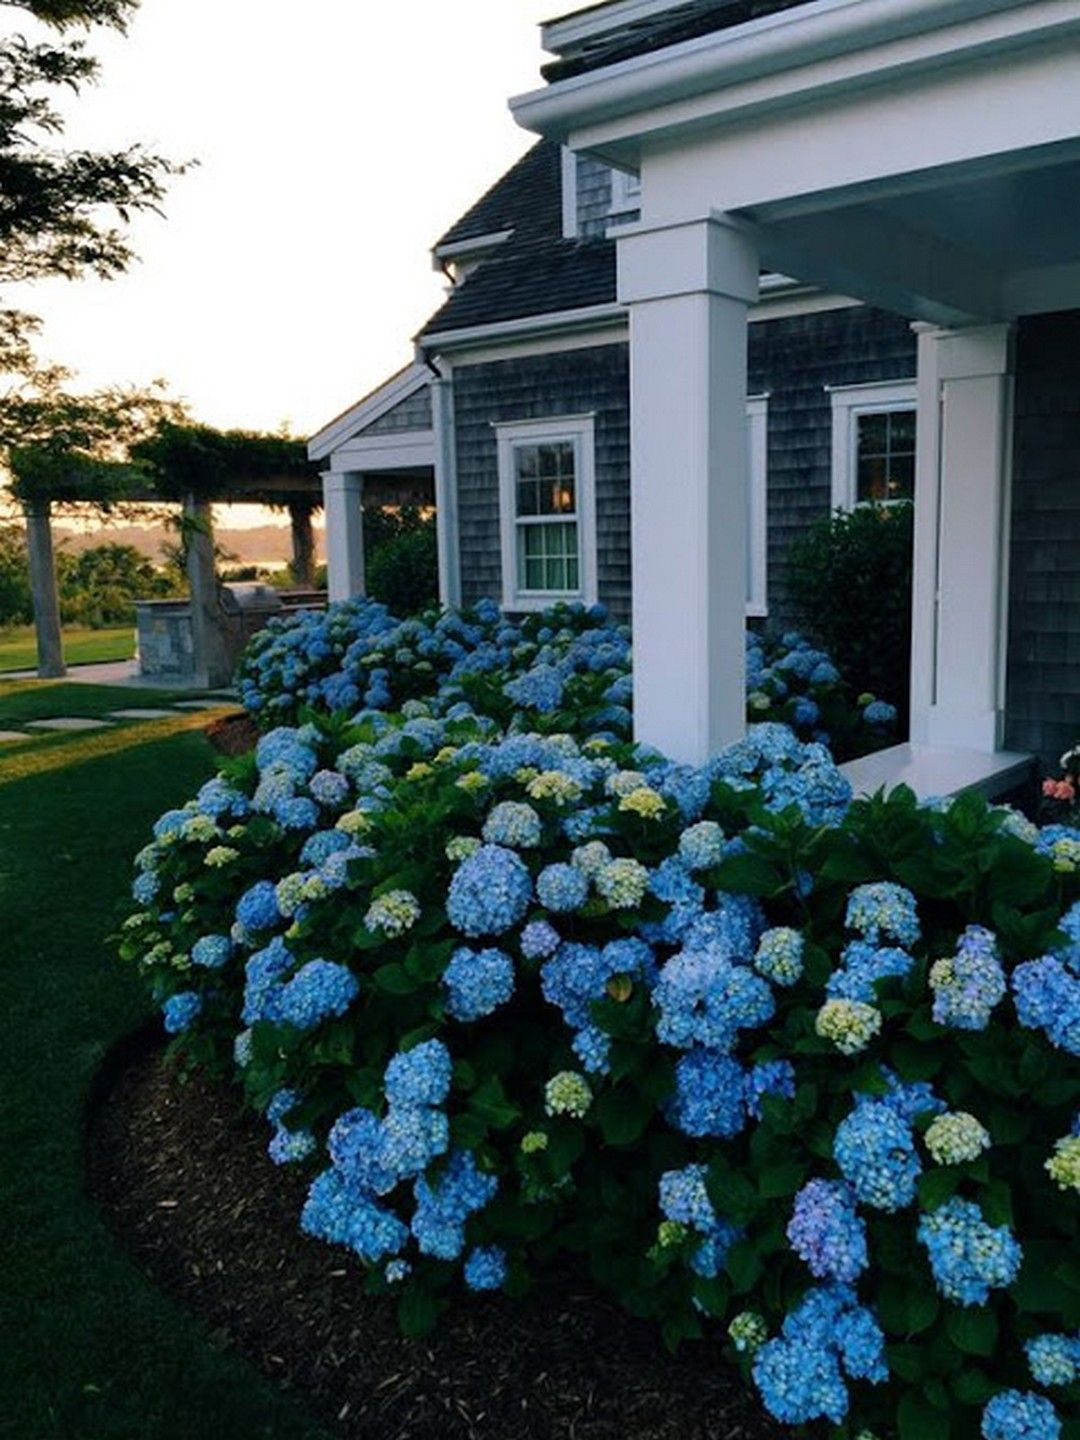 Farmhouse Landscaping Front Yard Ideas: 20 Gorgeous Photos ... on low water front yard design, traditional front yard design, prairie front yard design, house front yard design, flat front yard design, garden front yard design, tuscan front yard design, mediterranean front yard design, modern front yard design, farmhouse front yard landscaping, farmhouse front yard fencing, country front yard design, contemporary front yard design, home front yard design, florida front yard design, farmhouse front yard landscape ideas,